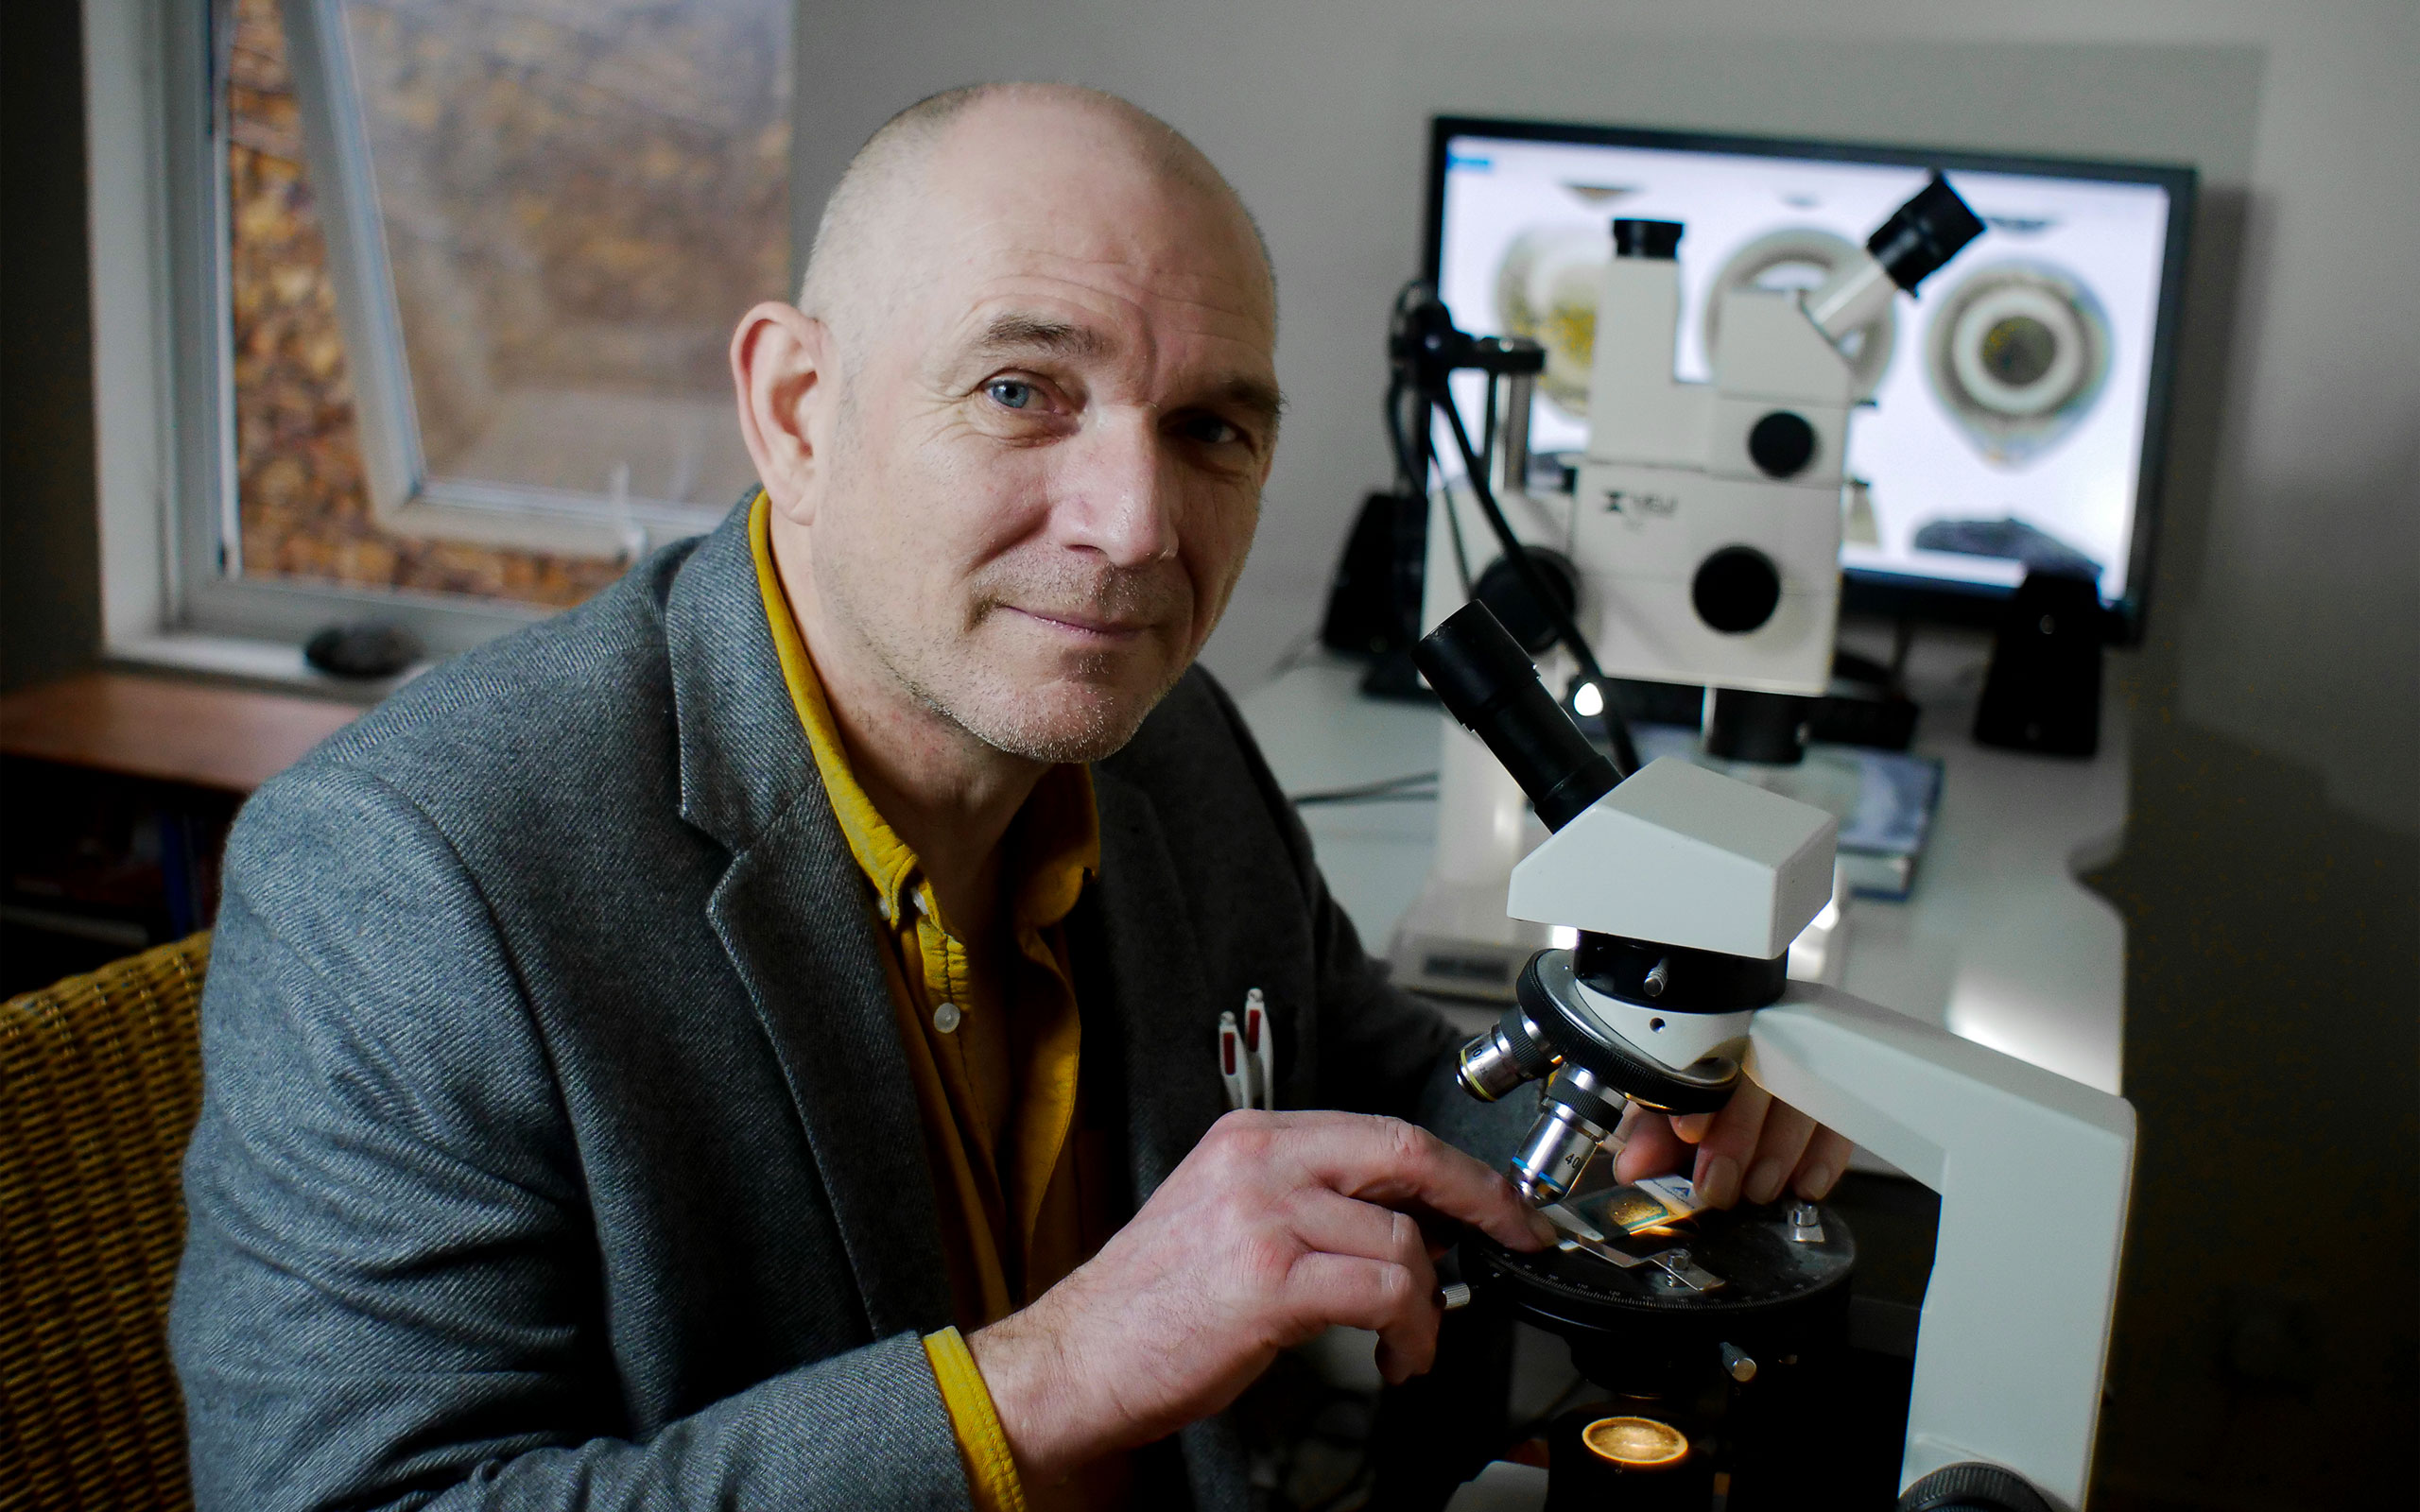 Matthew Genge in a yellow shirt and gray jacket seated at a microscope.